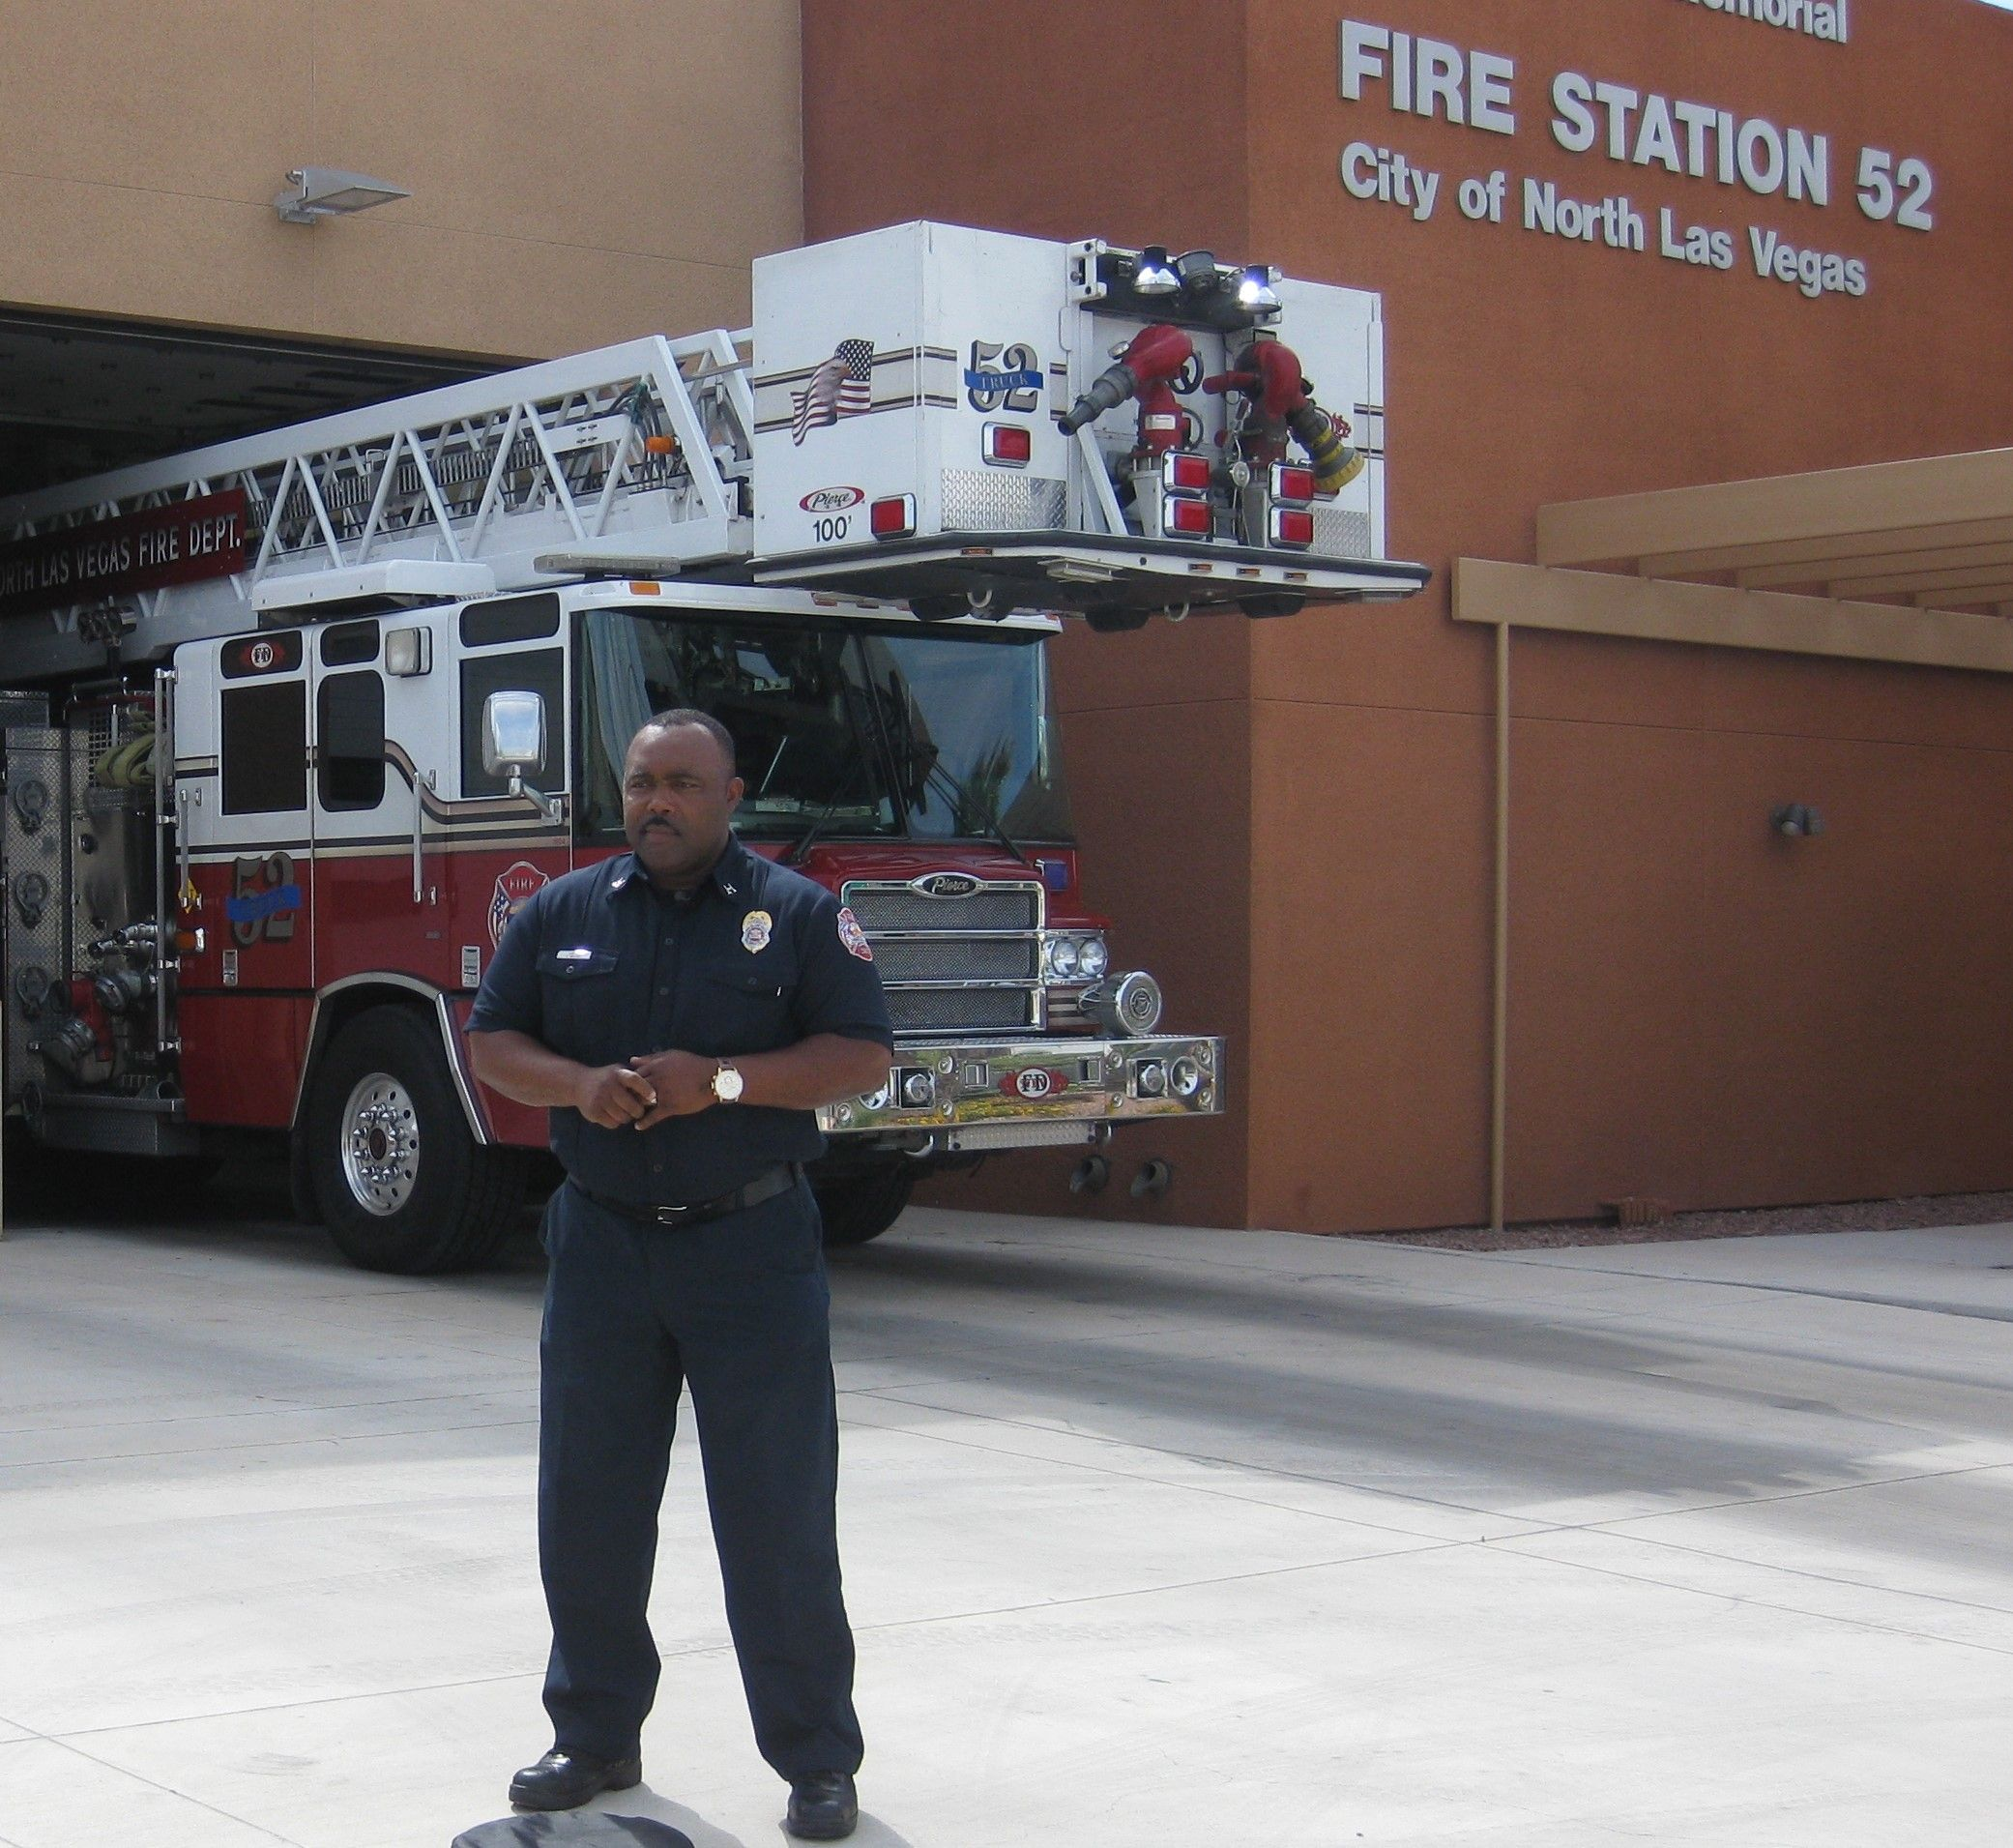 Capt Cedric Williams Pio North Las Vegas Fire Rescue A Successful Career As A Fireman And In The Military Fire Learn To Swim Fire Station Water Safety